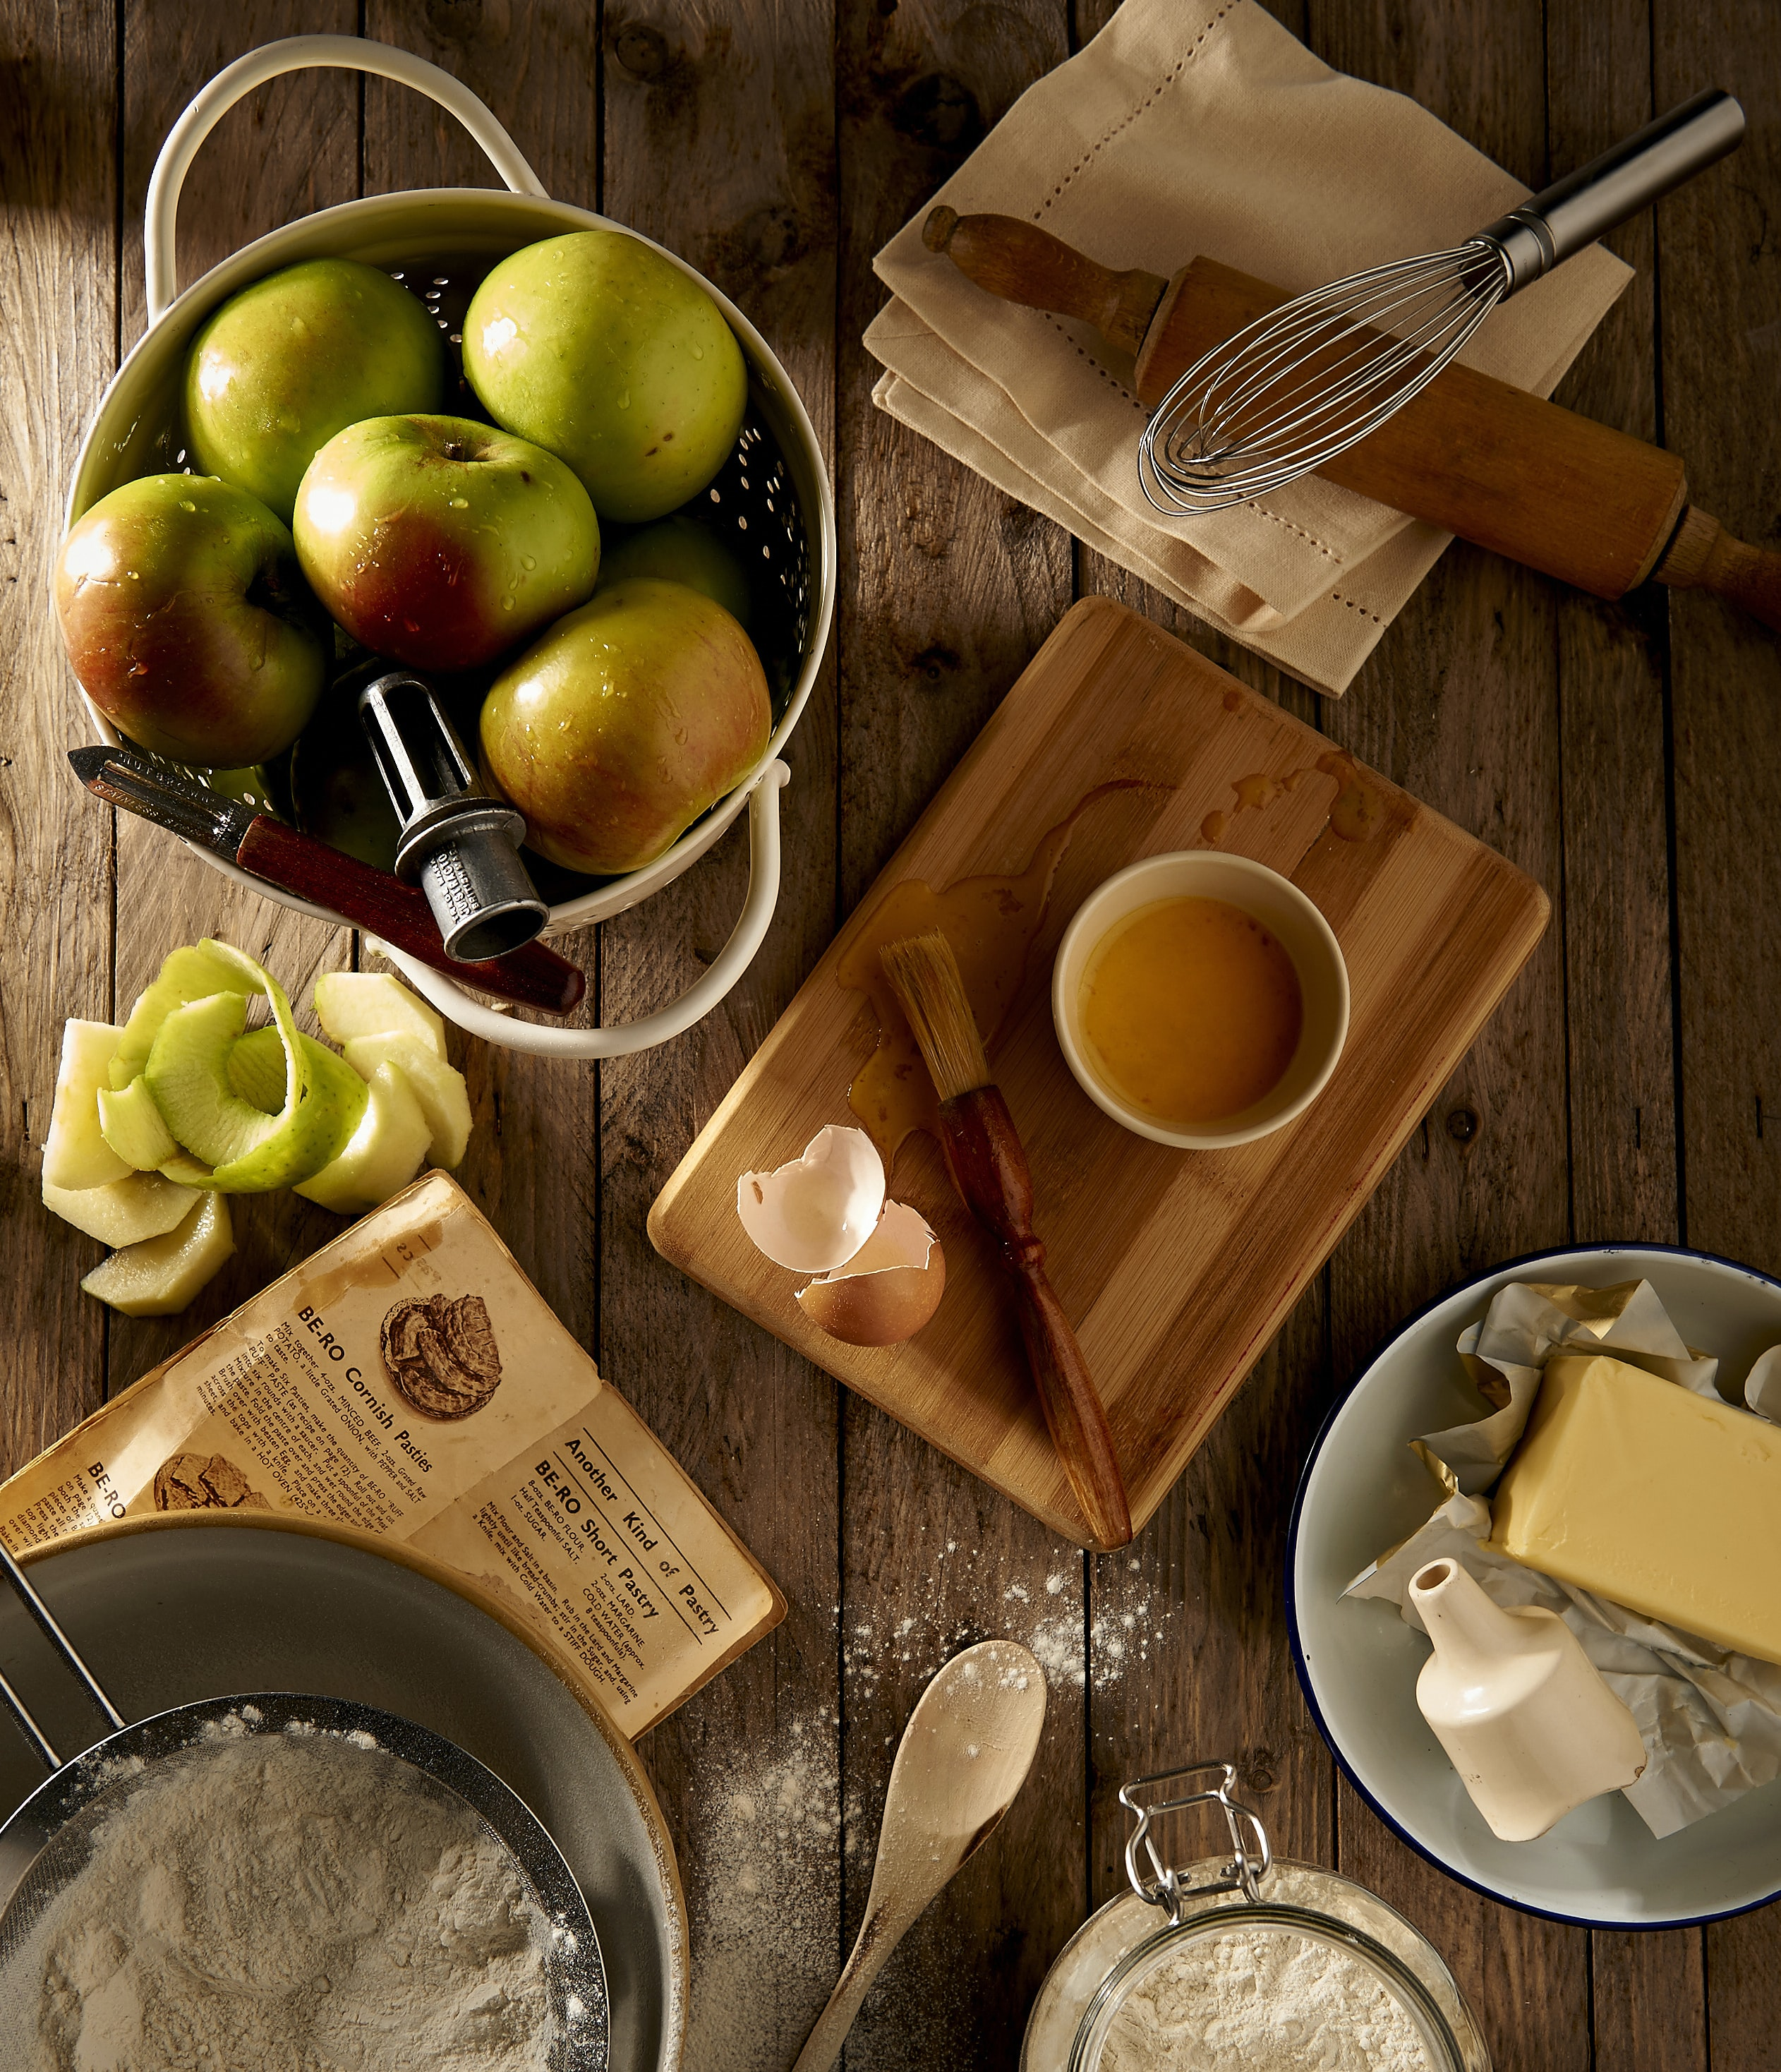 Flat lay of apples, butter, flour, and ingredients for an apple pie